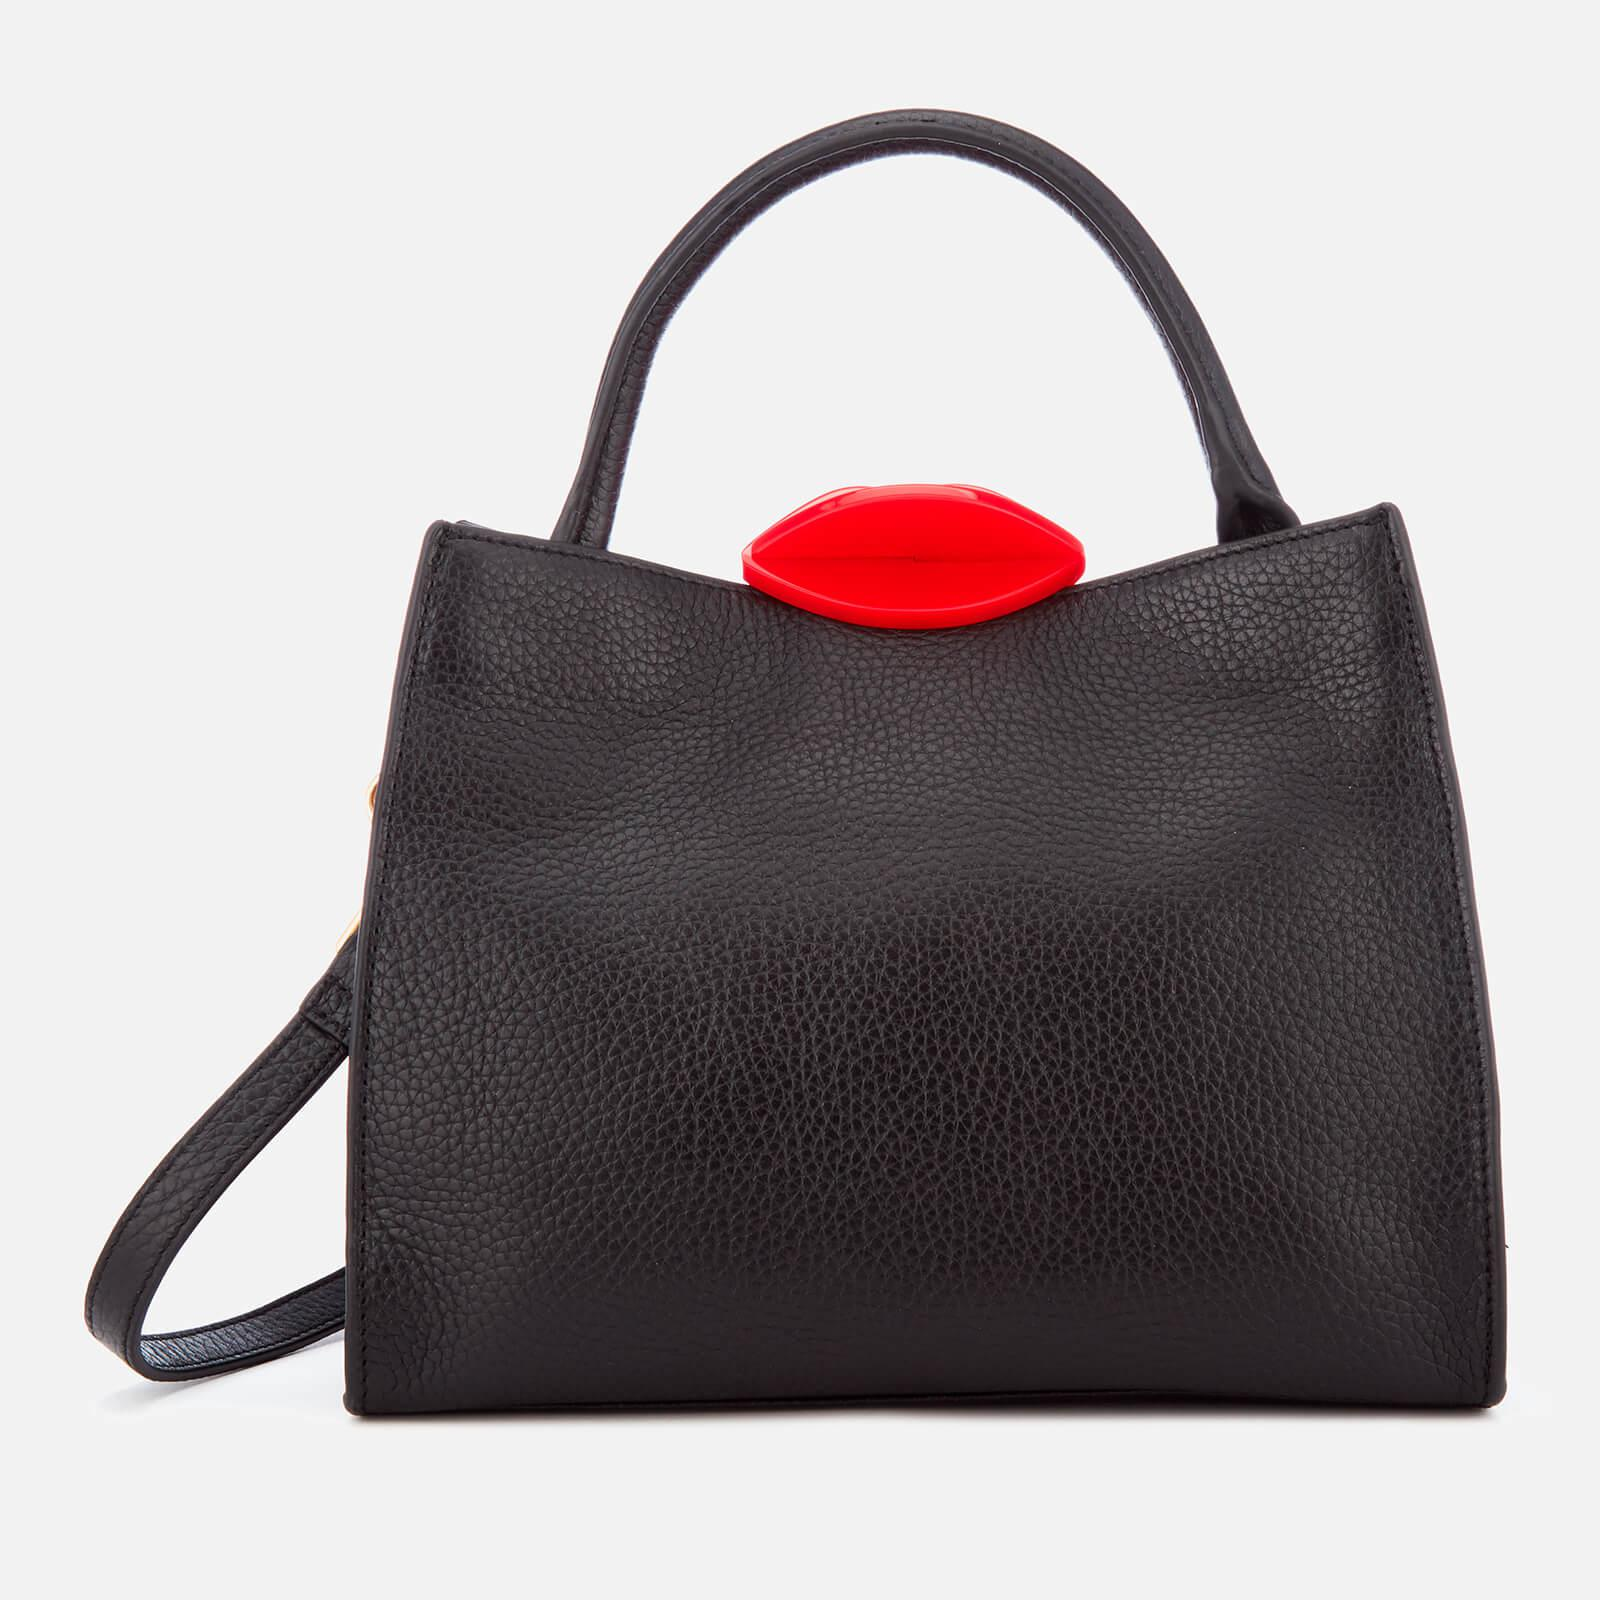 9188003316c23a Lyst - Lulu Guinness Small Locked Lips Opt/strap Annette Tote Bag in Red